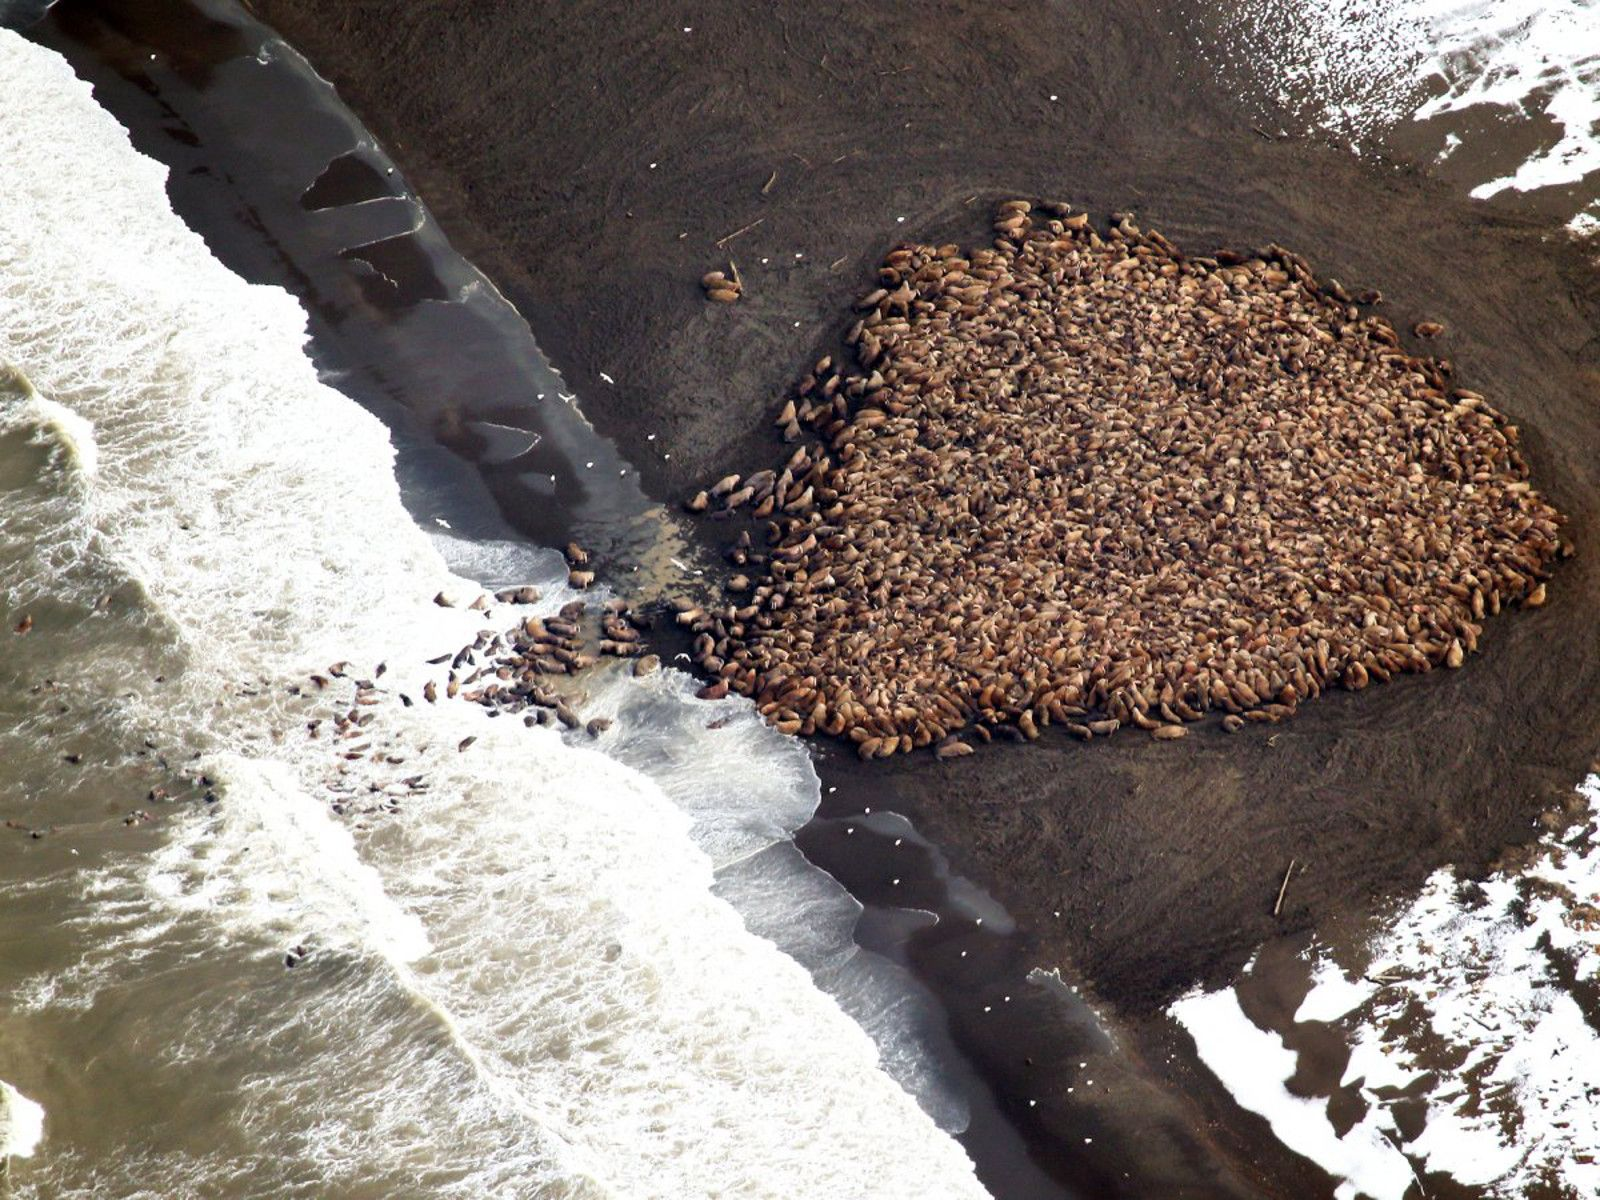 <p>This striking image sheds light on yet another disturbing toll that climate change is taking on our planet's wildlife.</p>